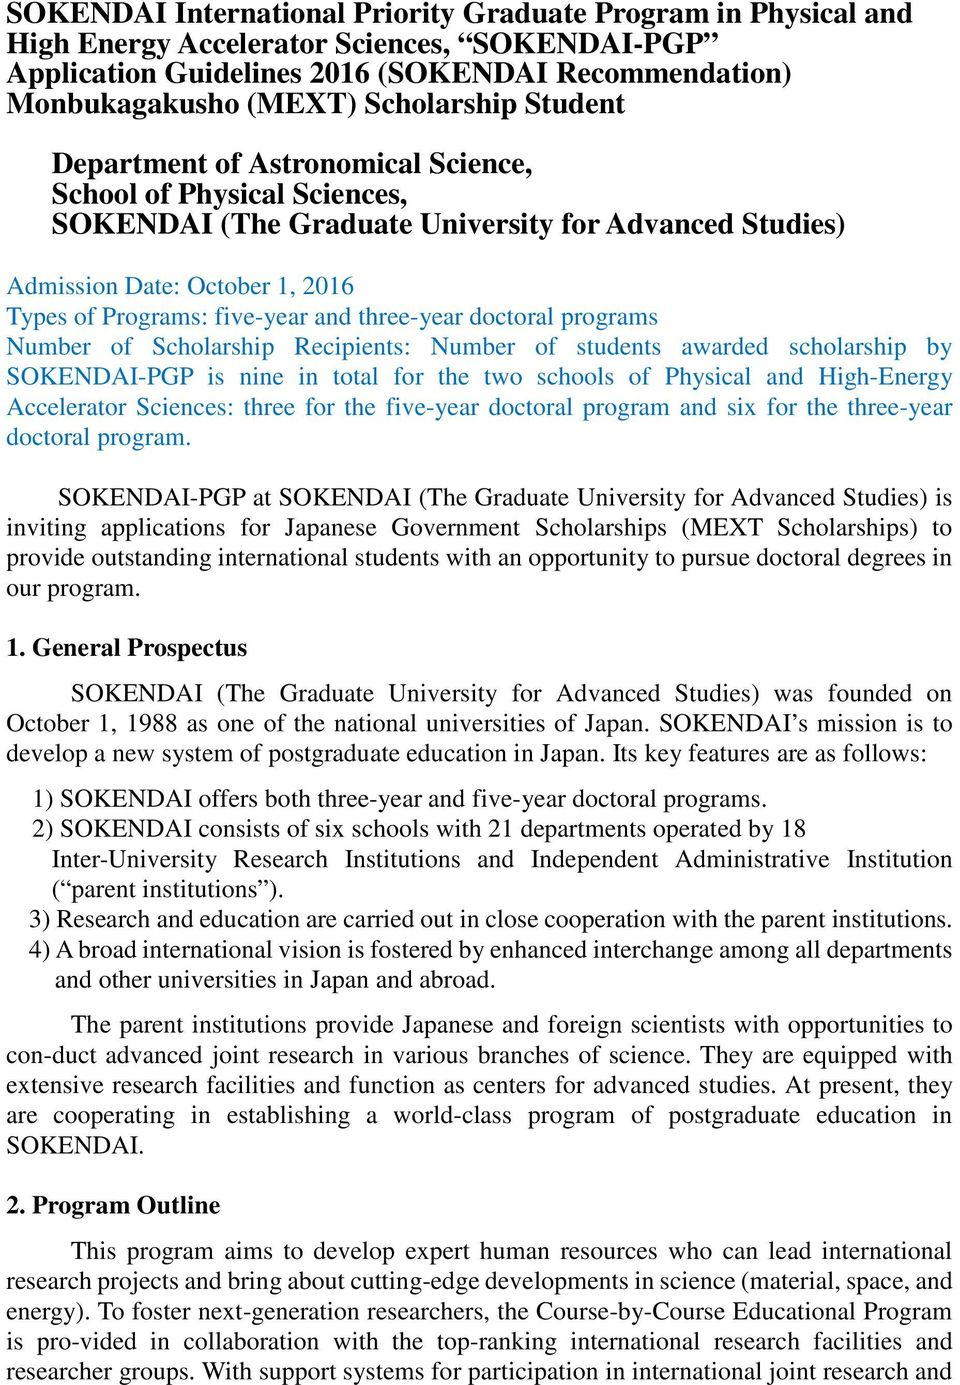 three-year doctoral programs Number of Scholarship Recipients: Number of students awarded scholarship by SOKENDAI-PGP is nine in total for the two schools of Physical and High-Energy Accelerator